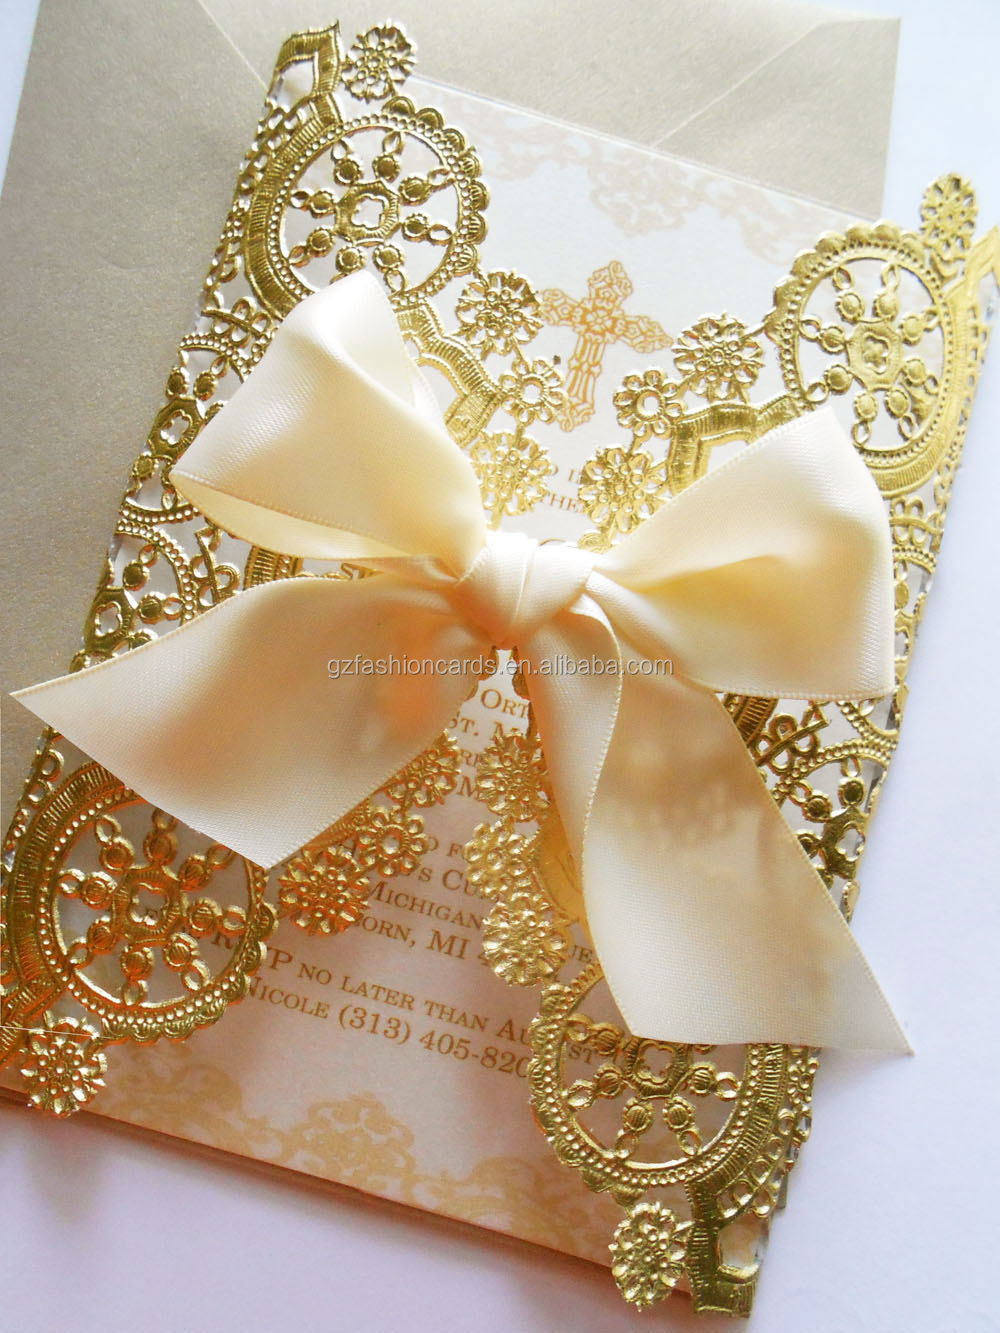 doily style metallic gold invitationfoil paper wedding